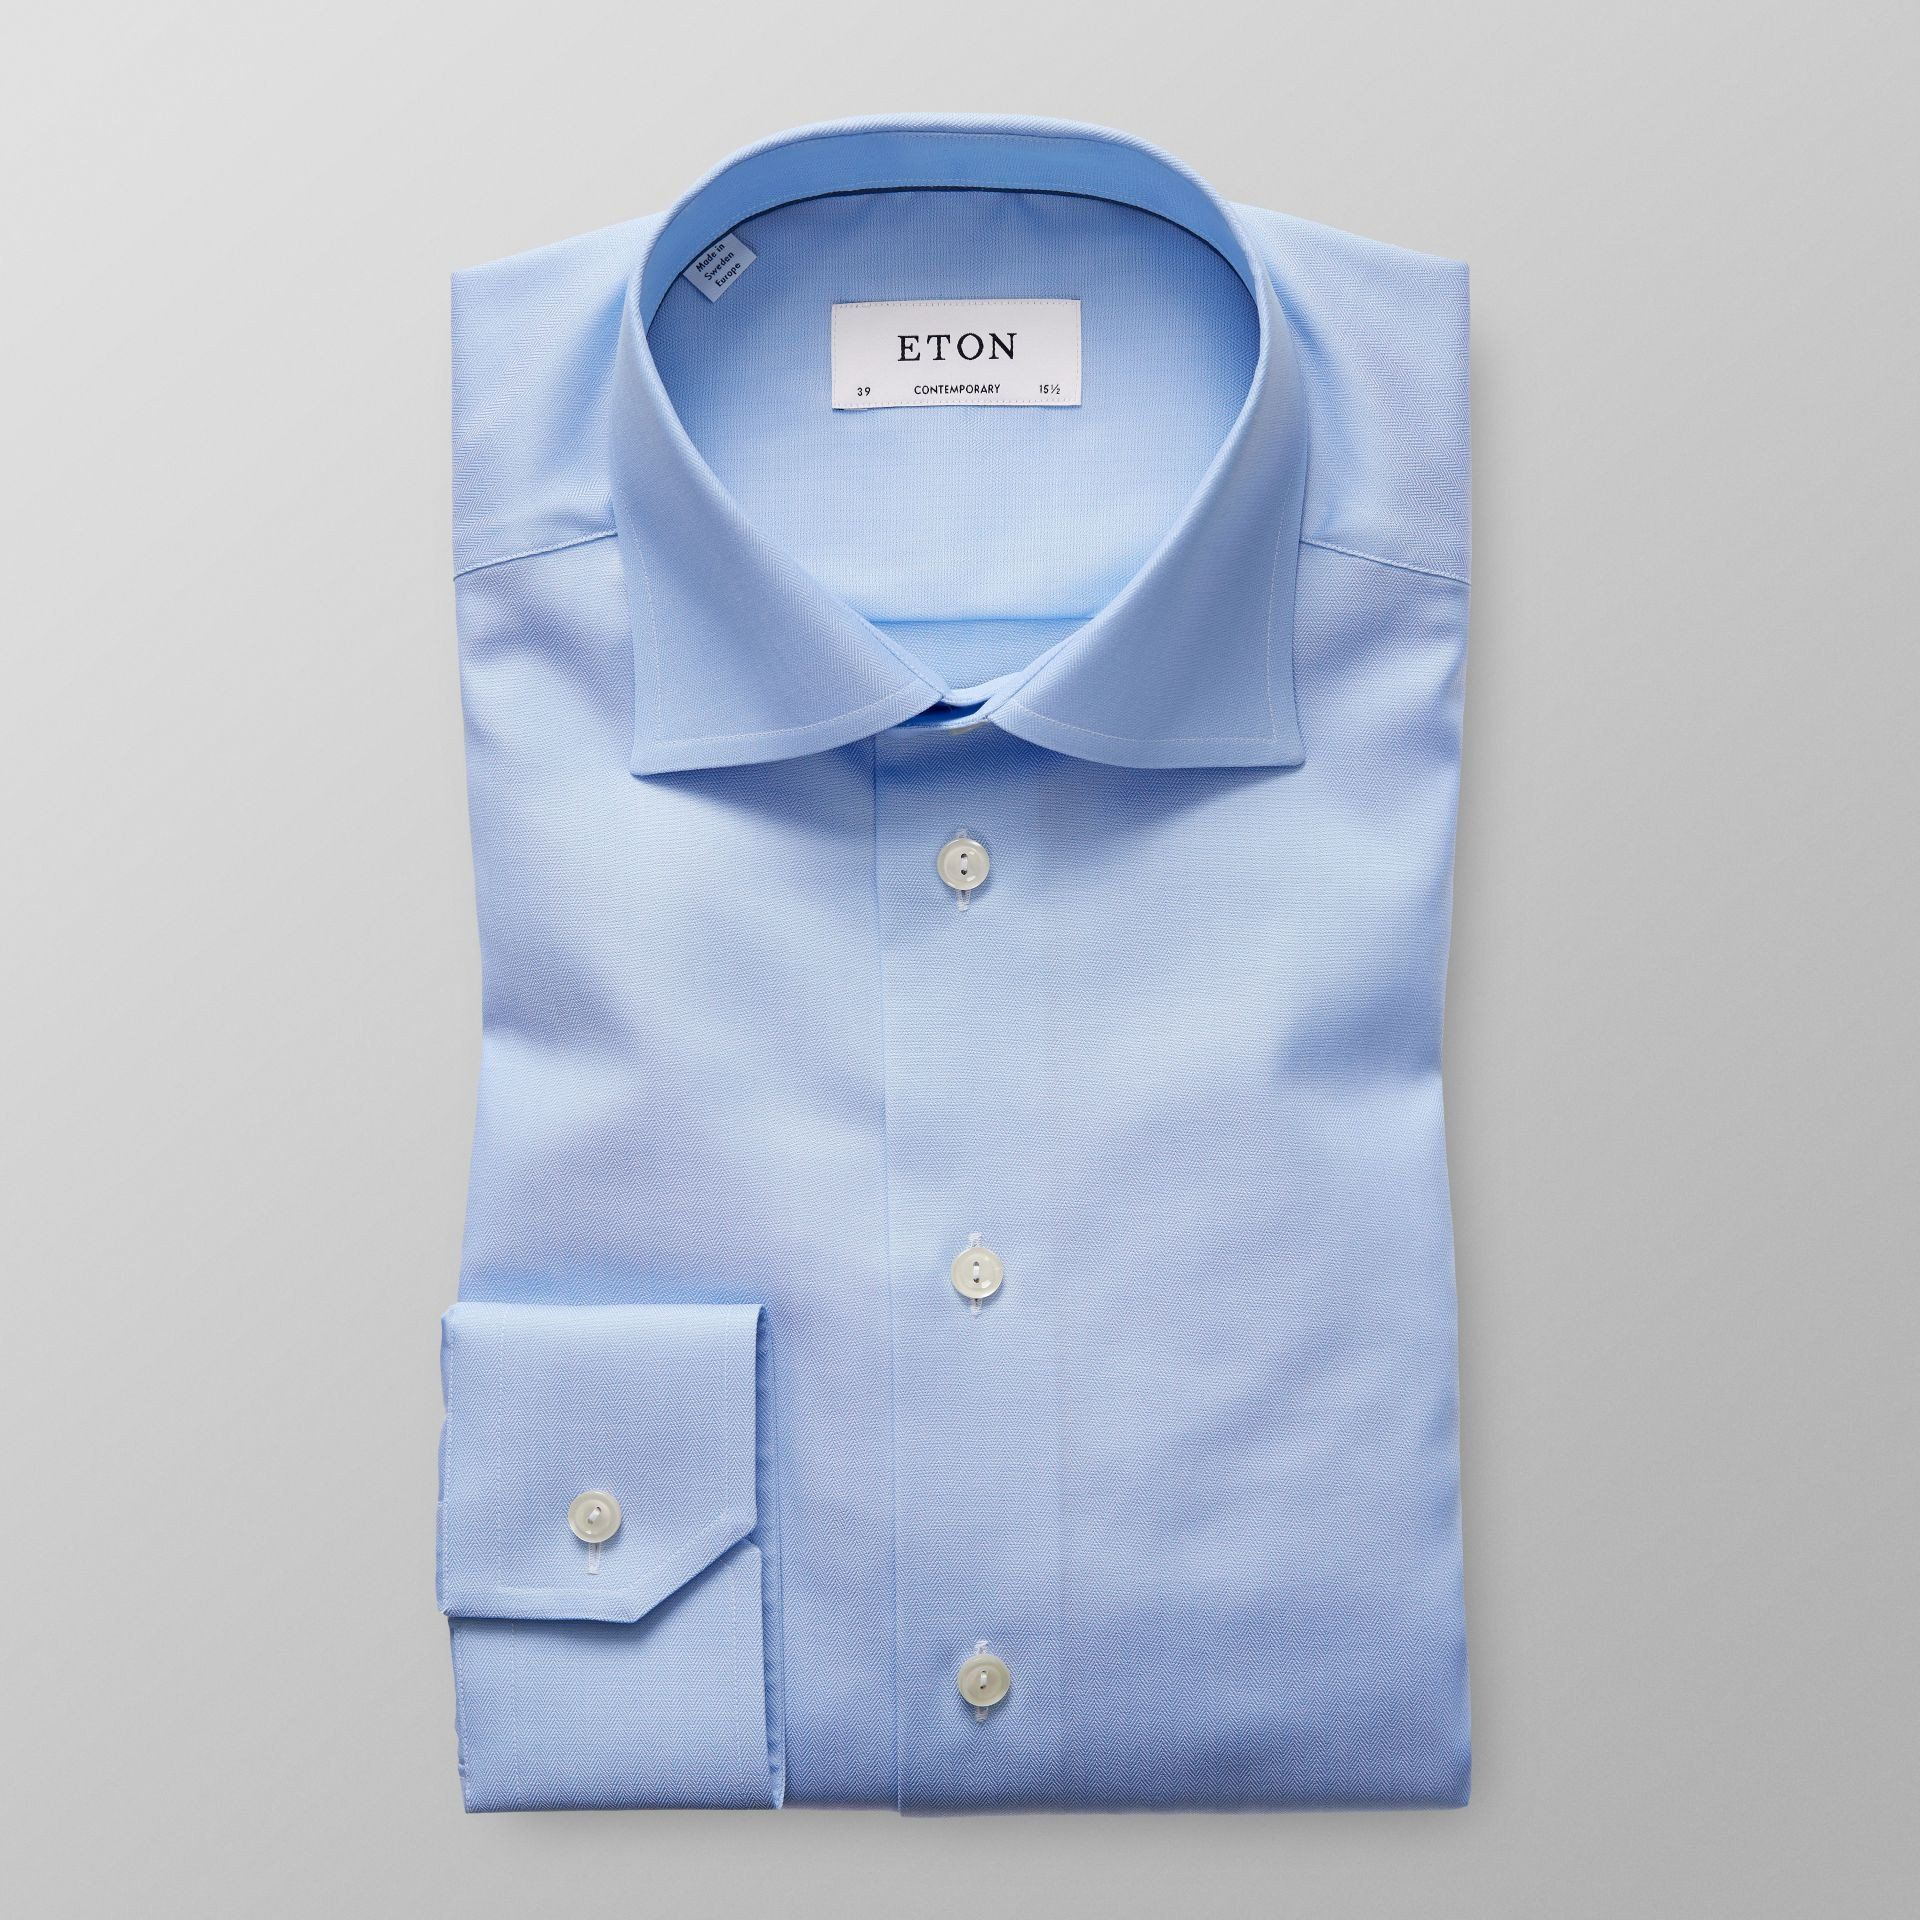 Eton Sky Blue Herringbone Twill Shirt